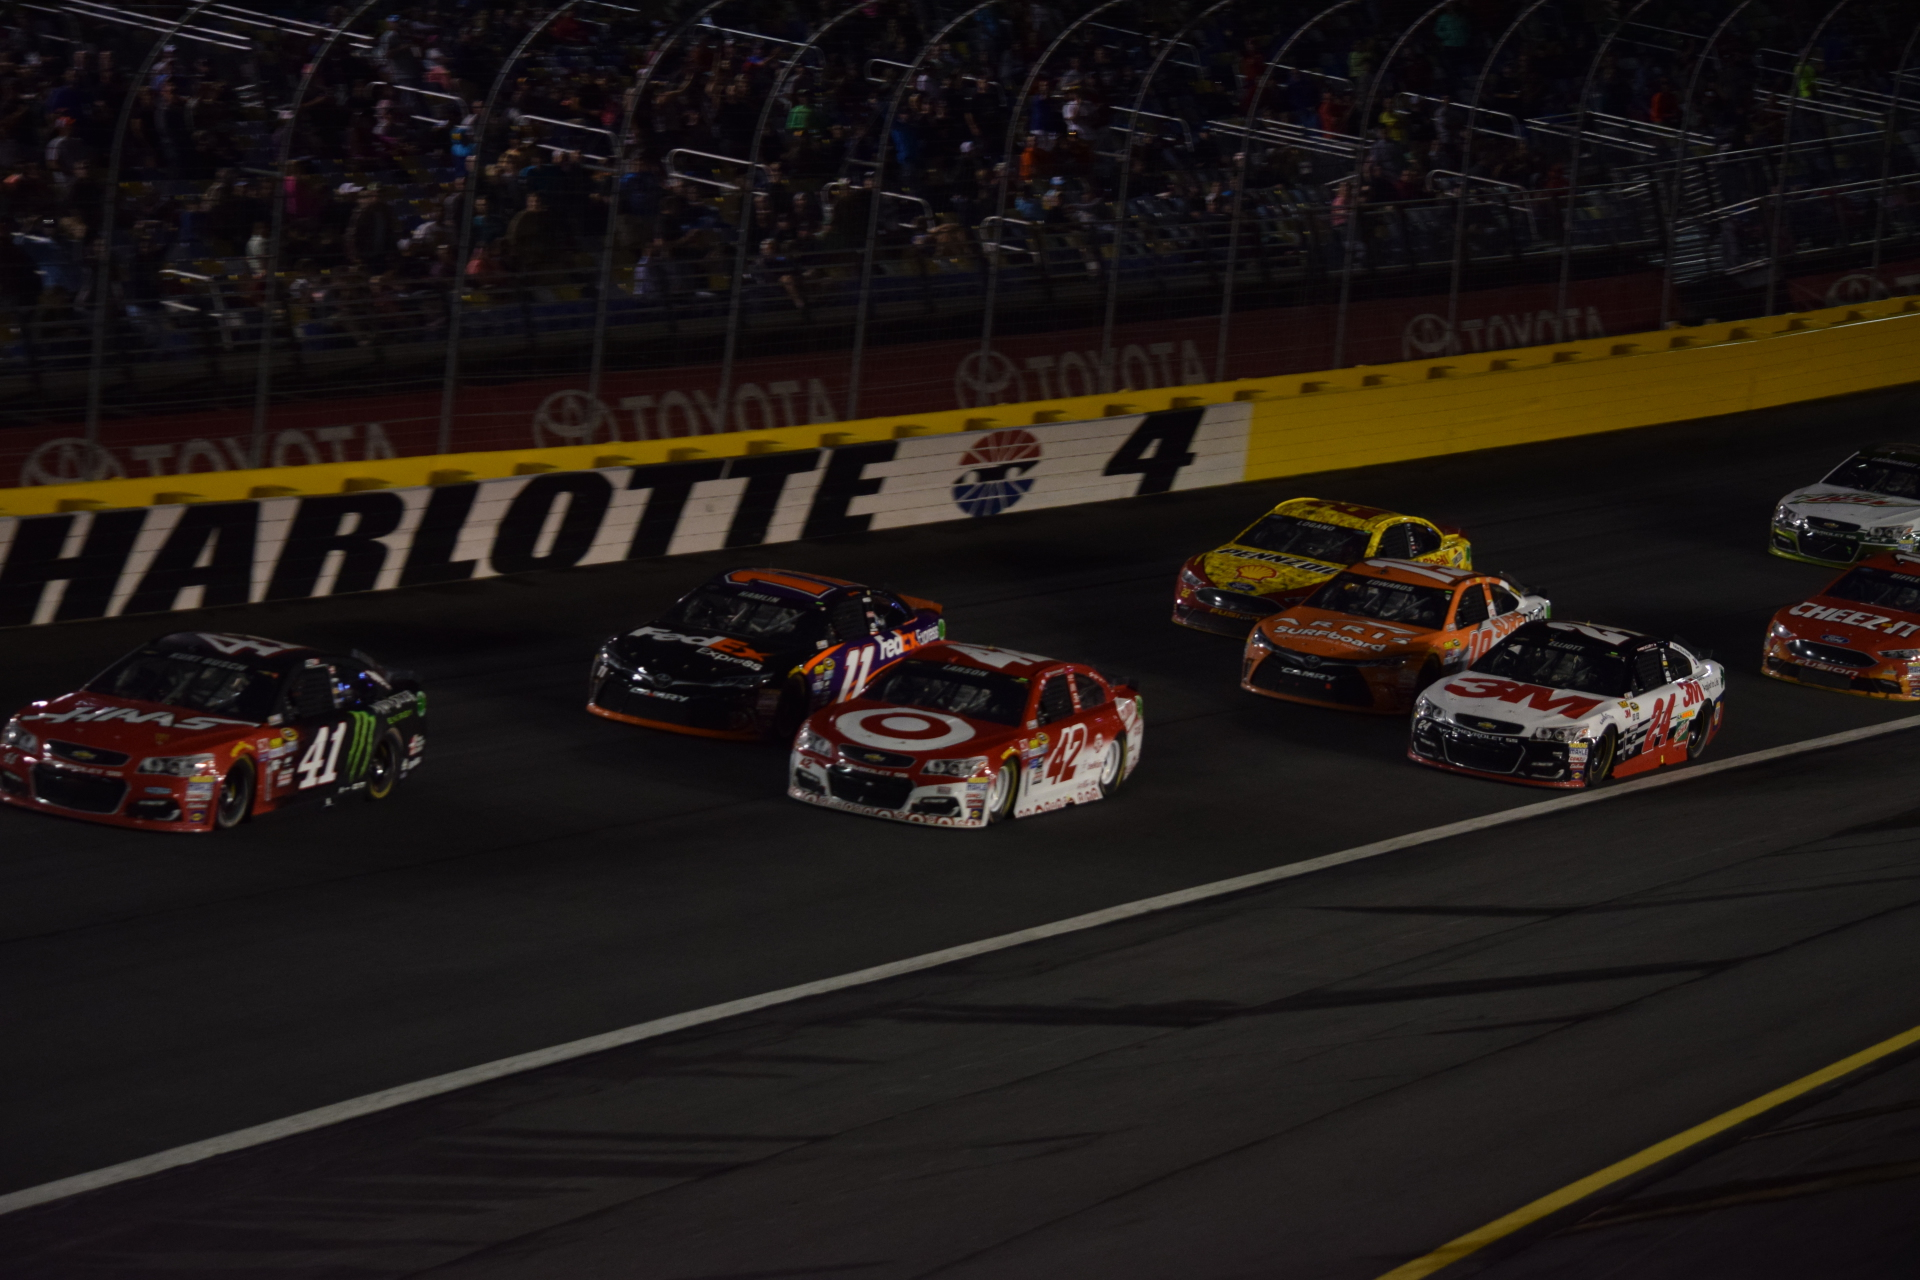 Charlotte Motor Speedway - Concord, NC